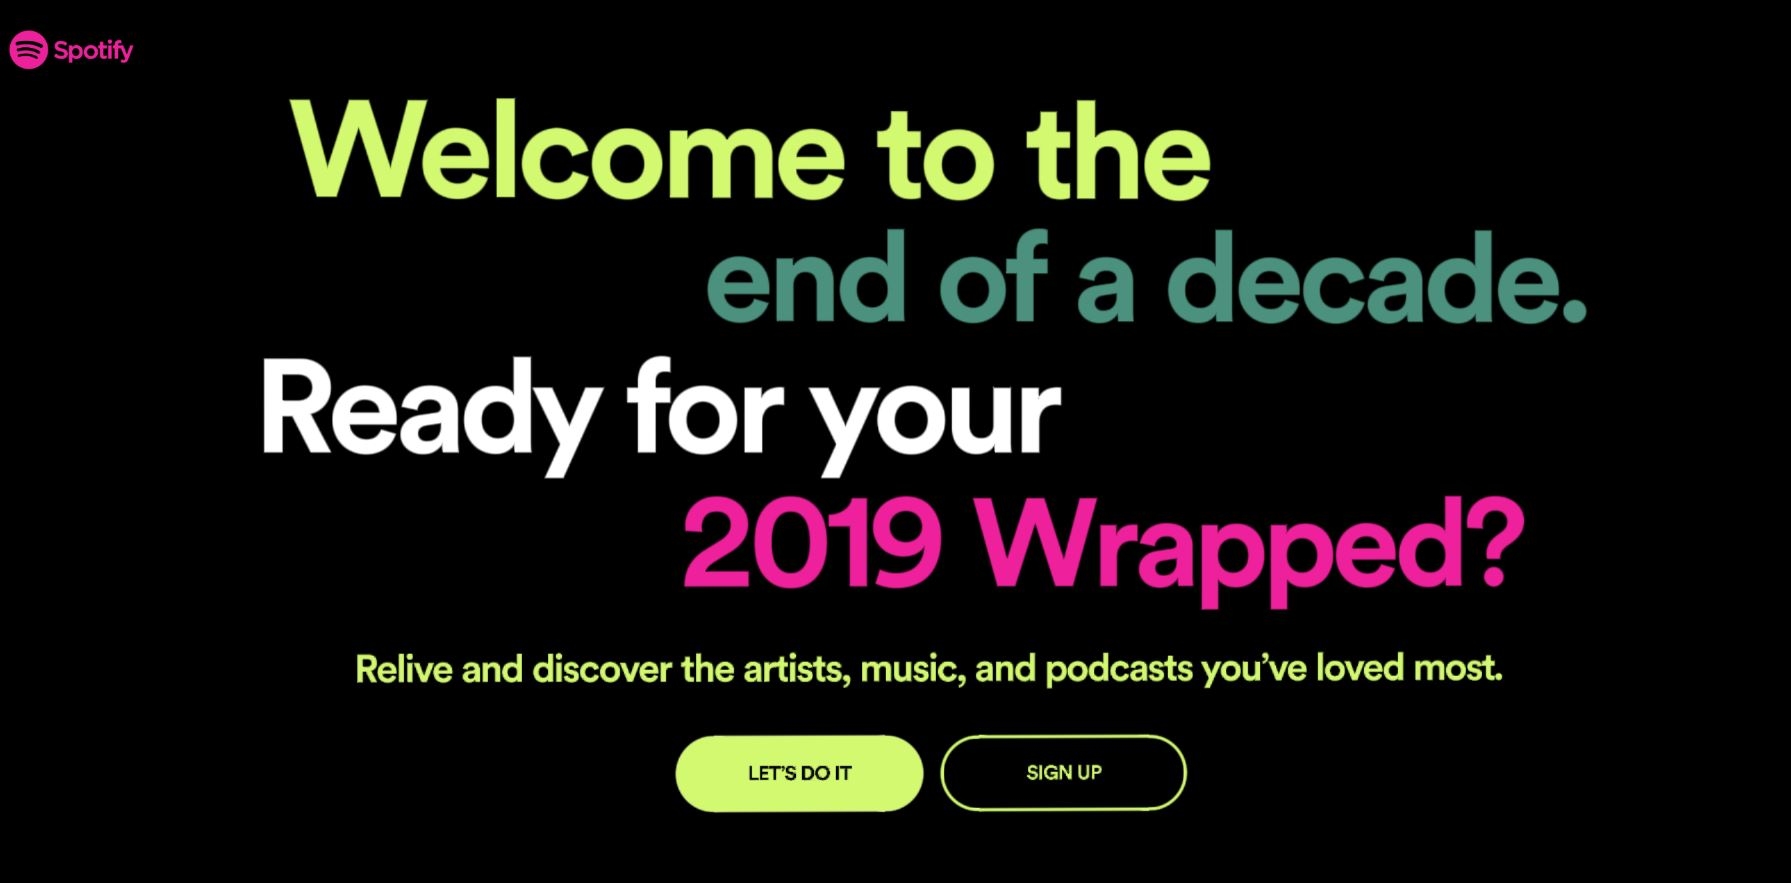 LP- Second Spotify page